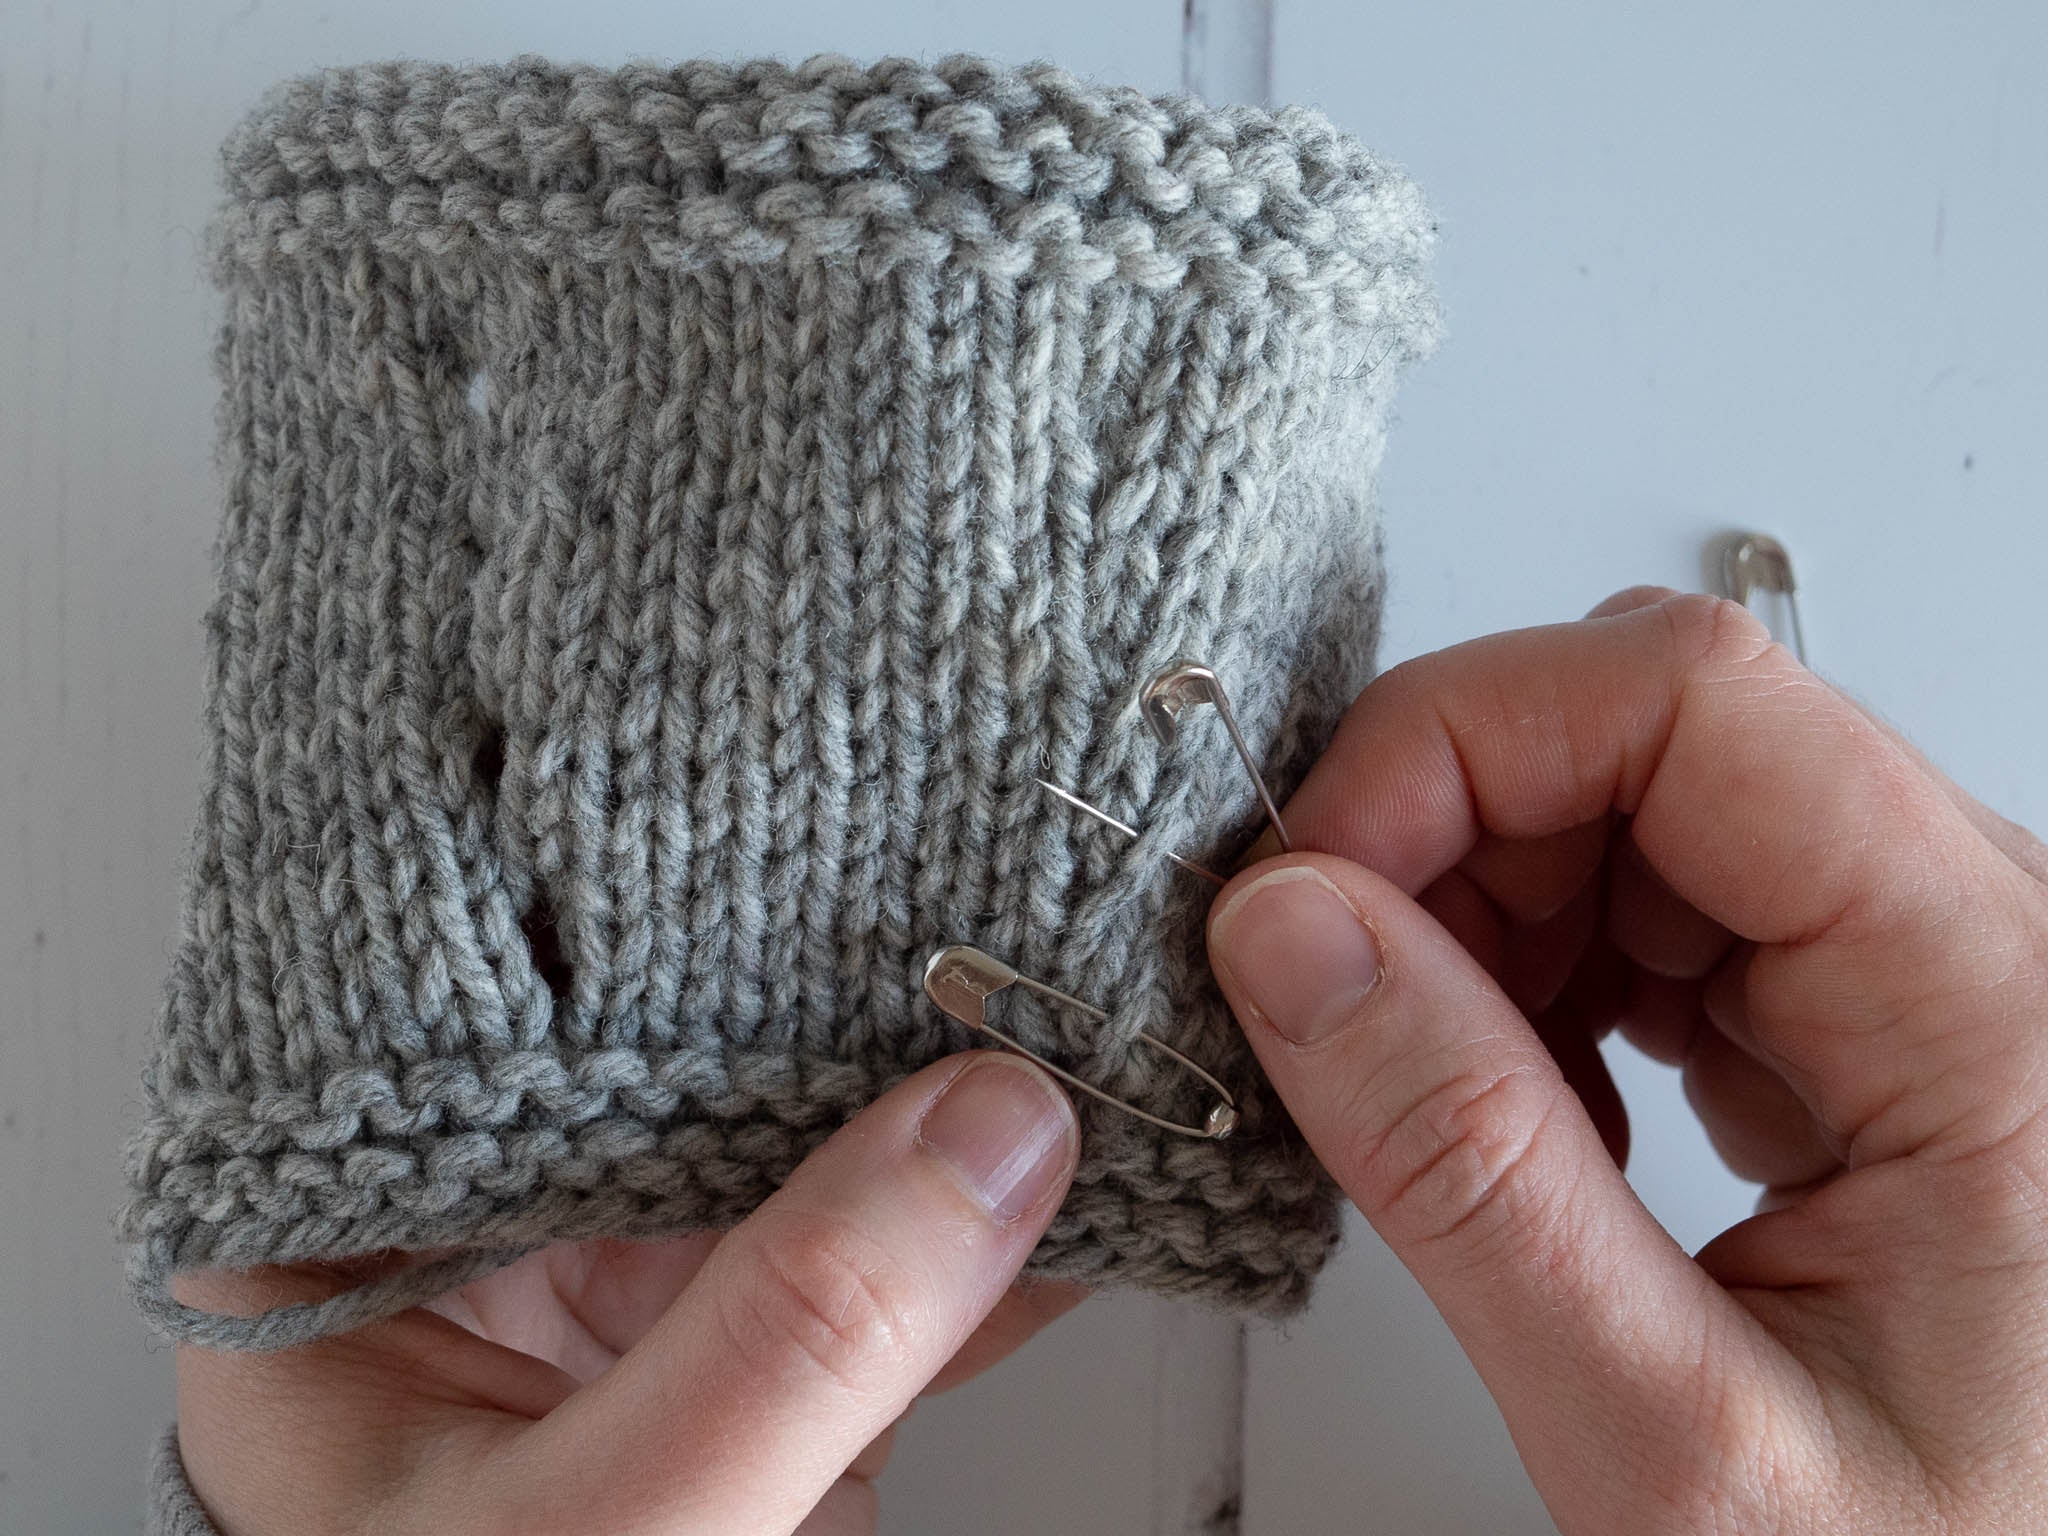 locking stitch markers shown marking increase on a grey knitted swatch